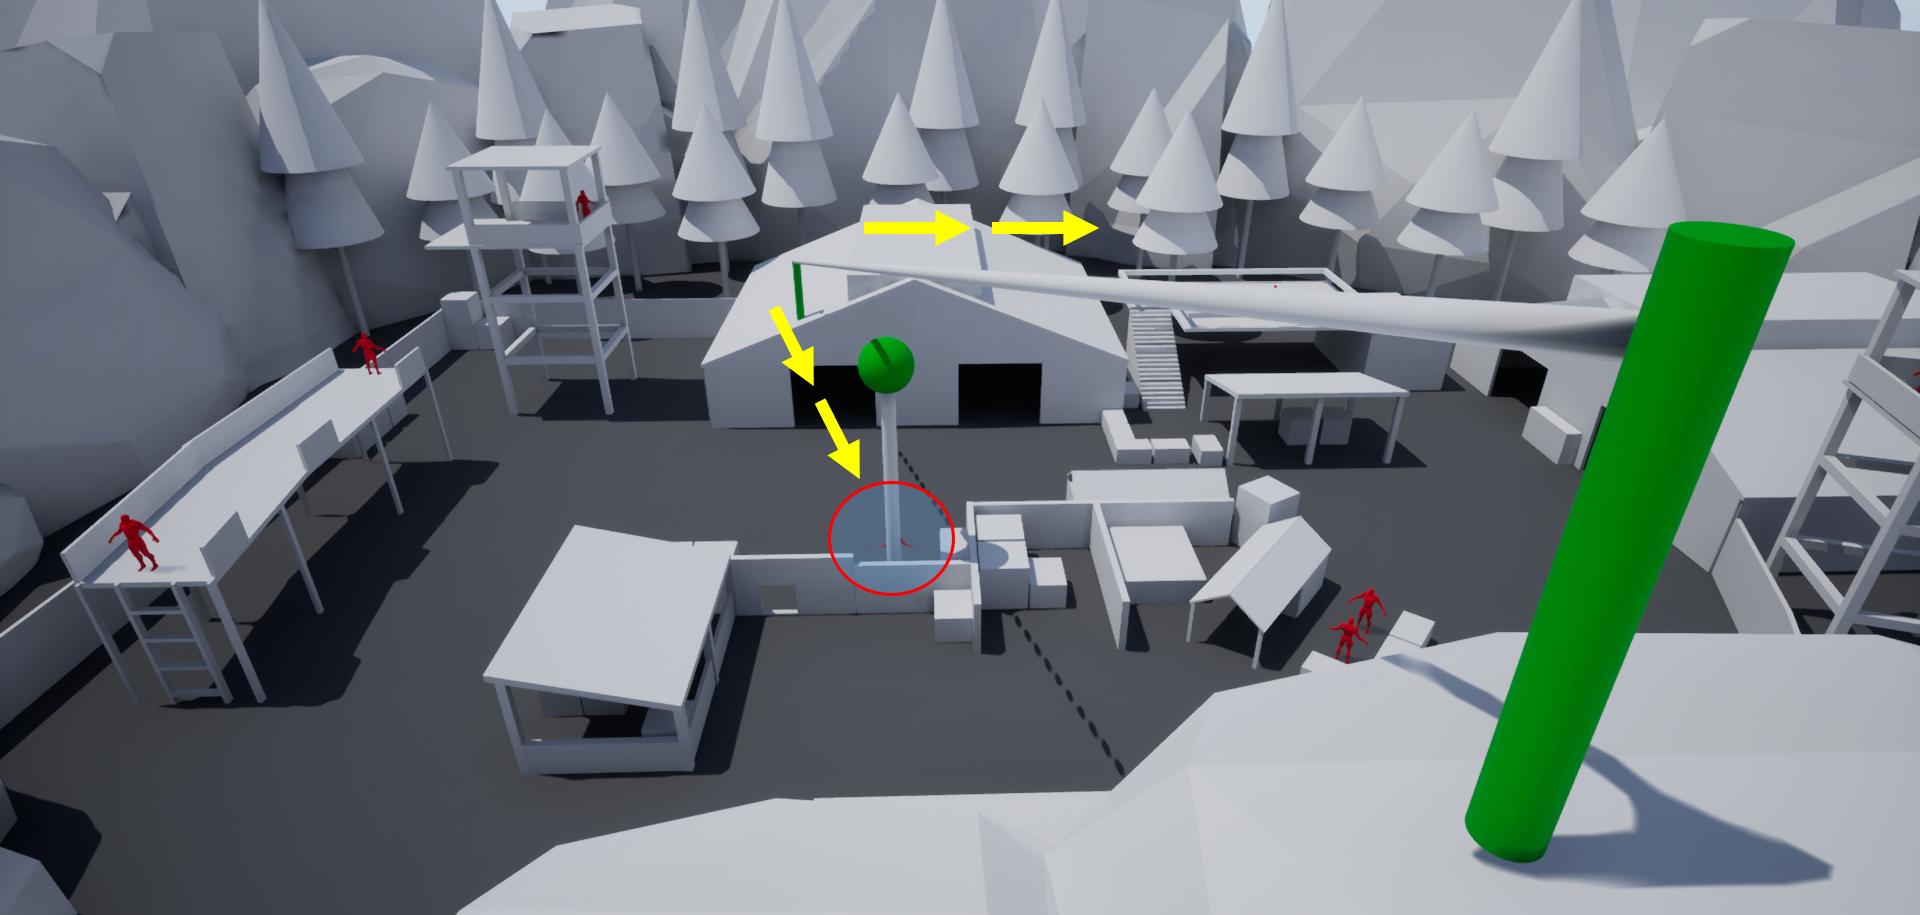 The left zipline offers quicker route to disabling the alarm system, but most likely results in being spotted by enemies